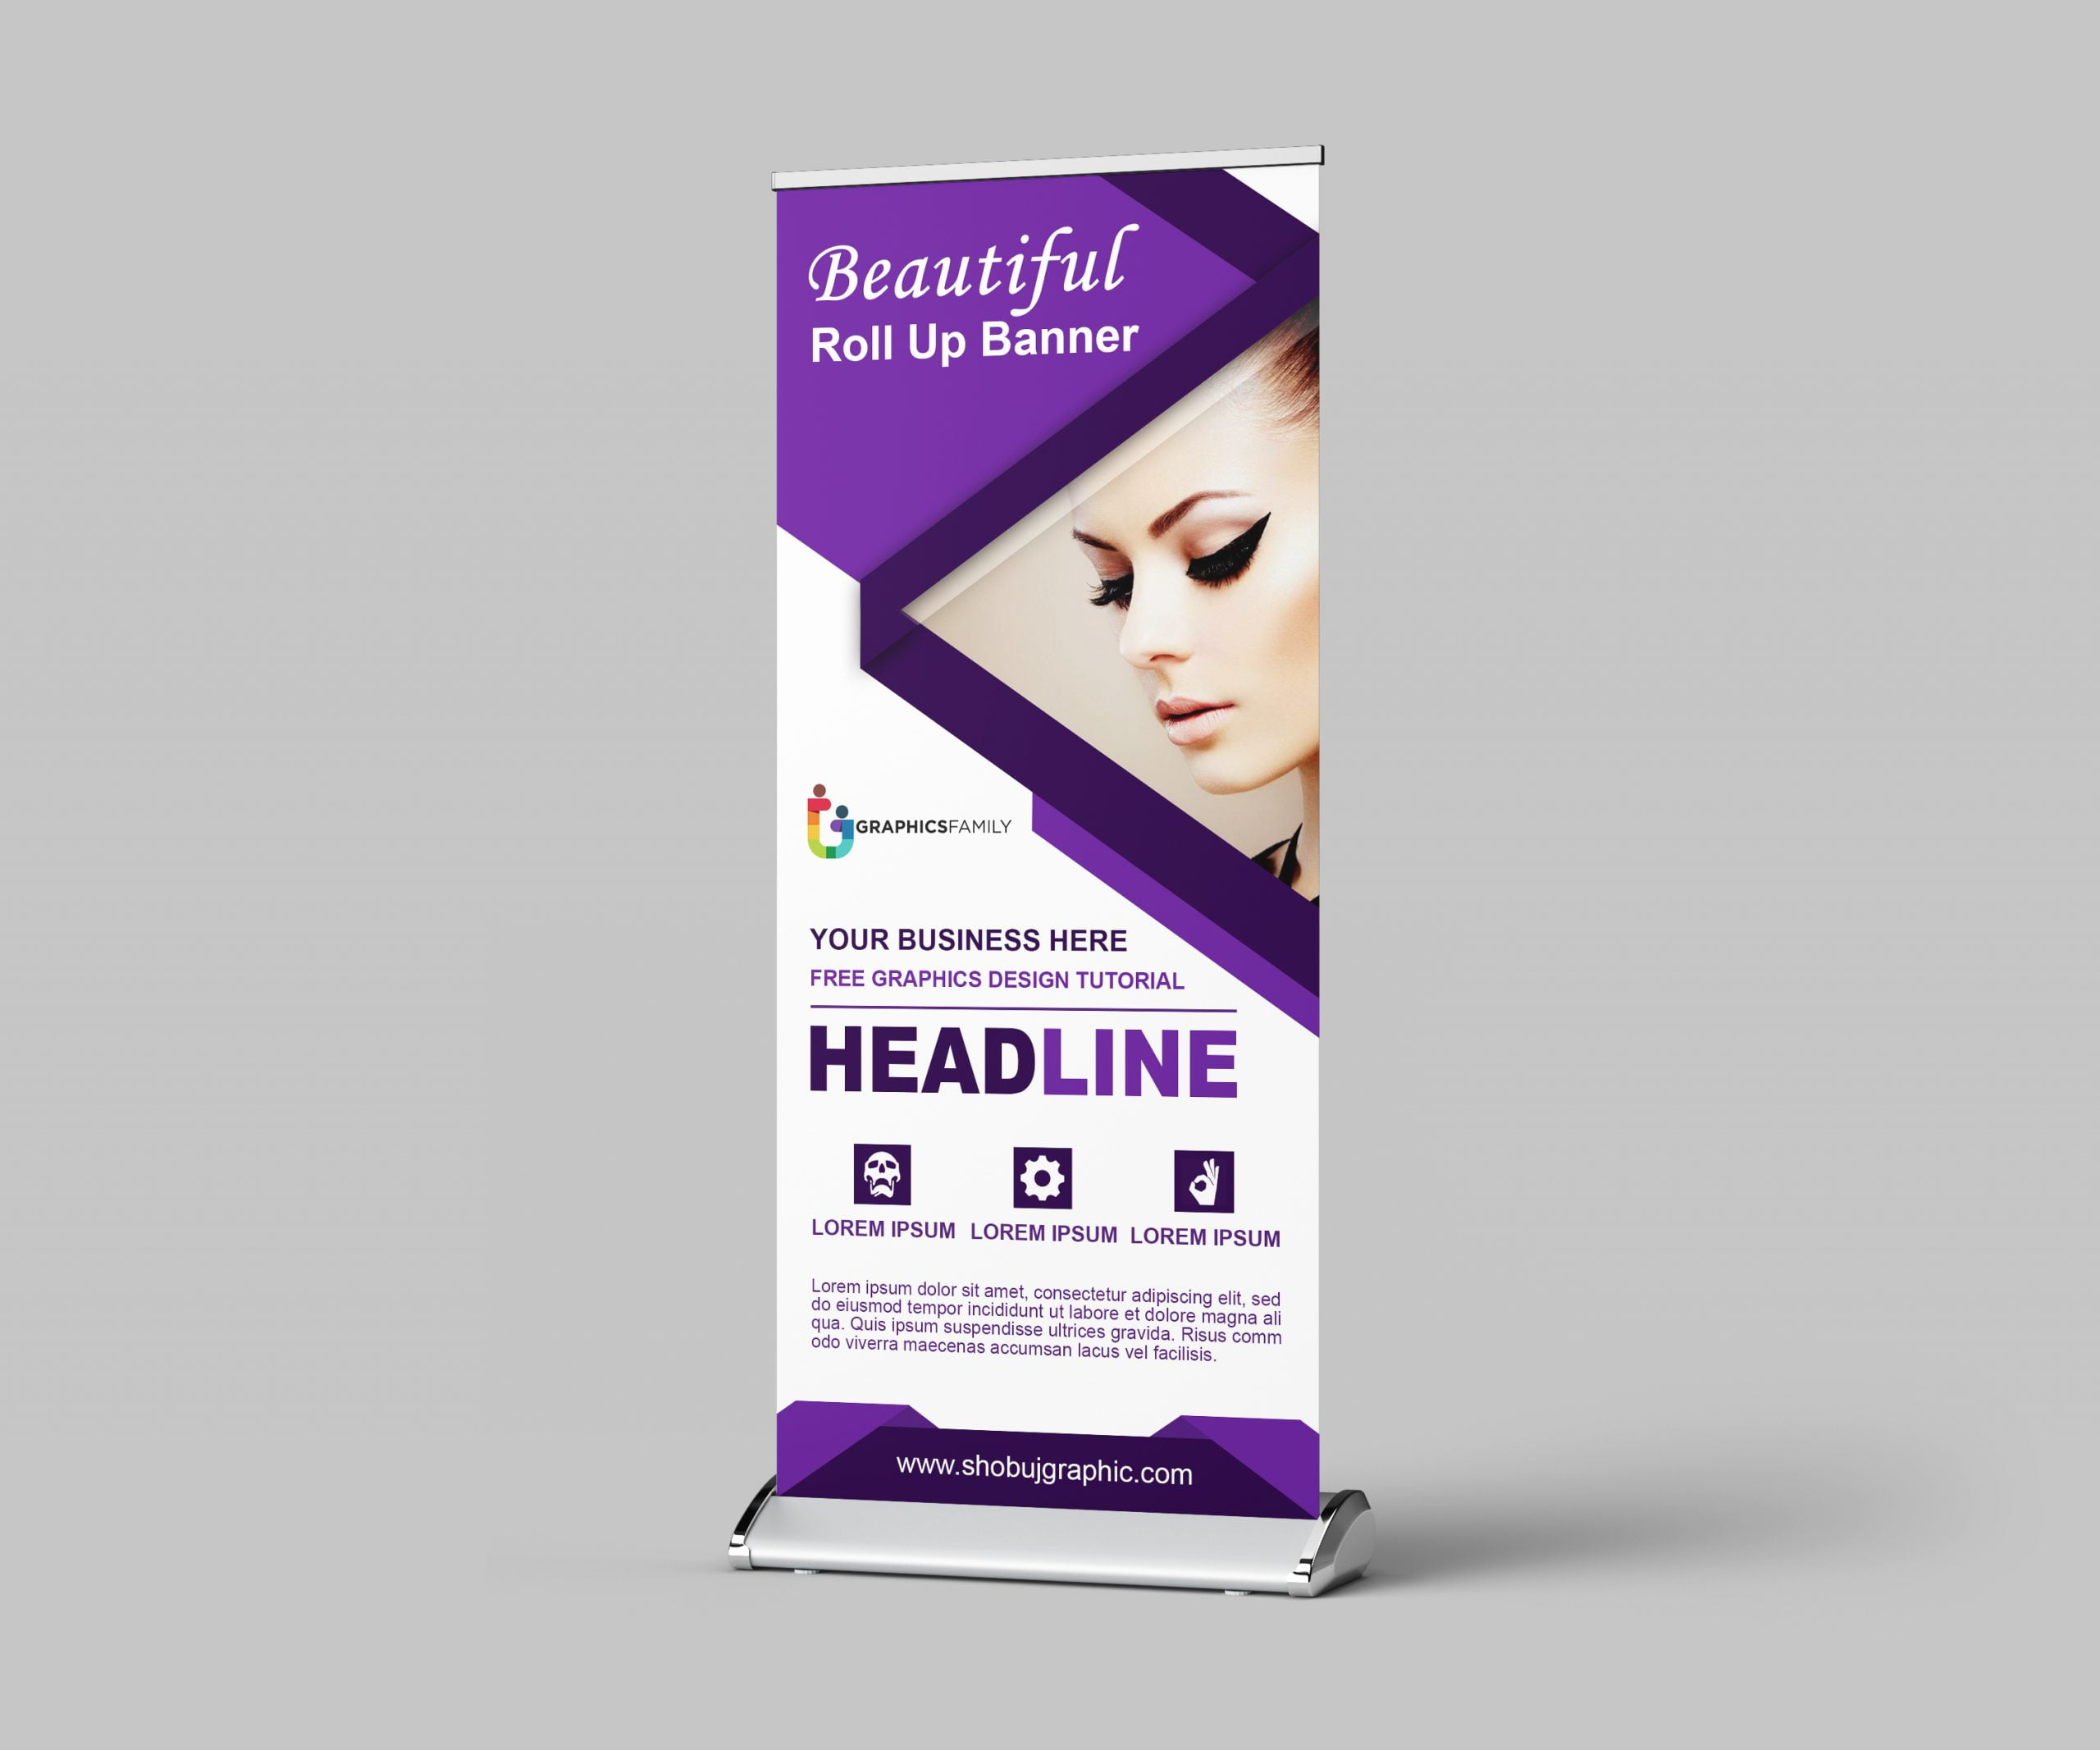 Free Photoshop Beauty Salon Roll Up Banner Design Template